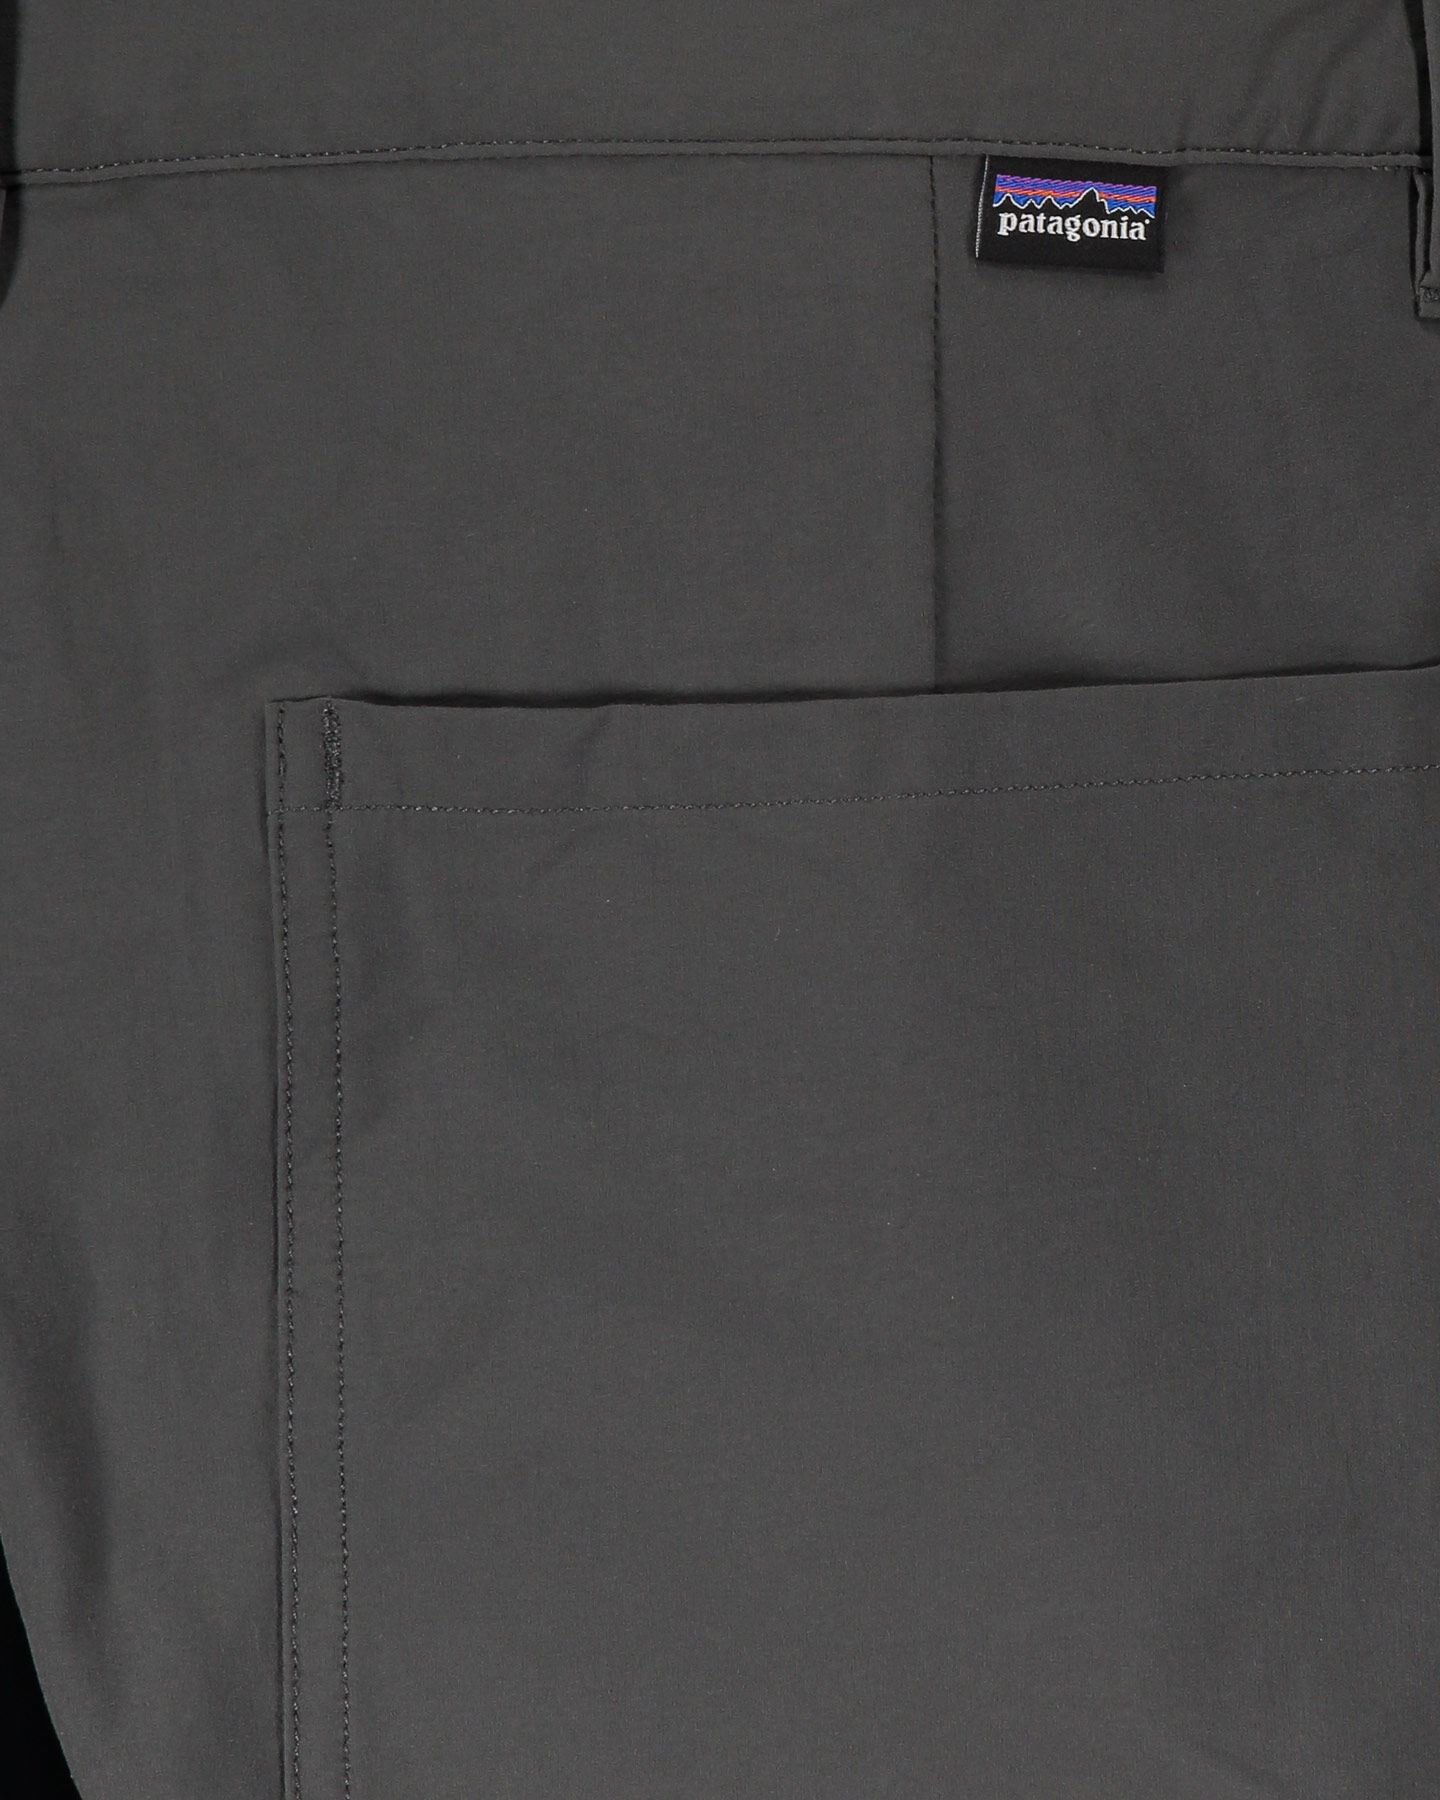 Pantalone outdoor PATAGONIA QUANDARY REG M S4007217 scatto 4